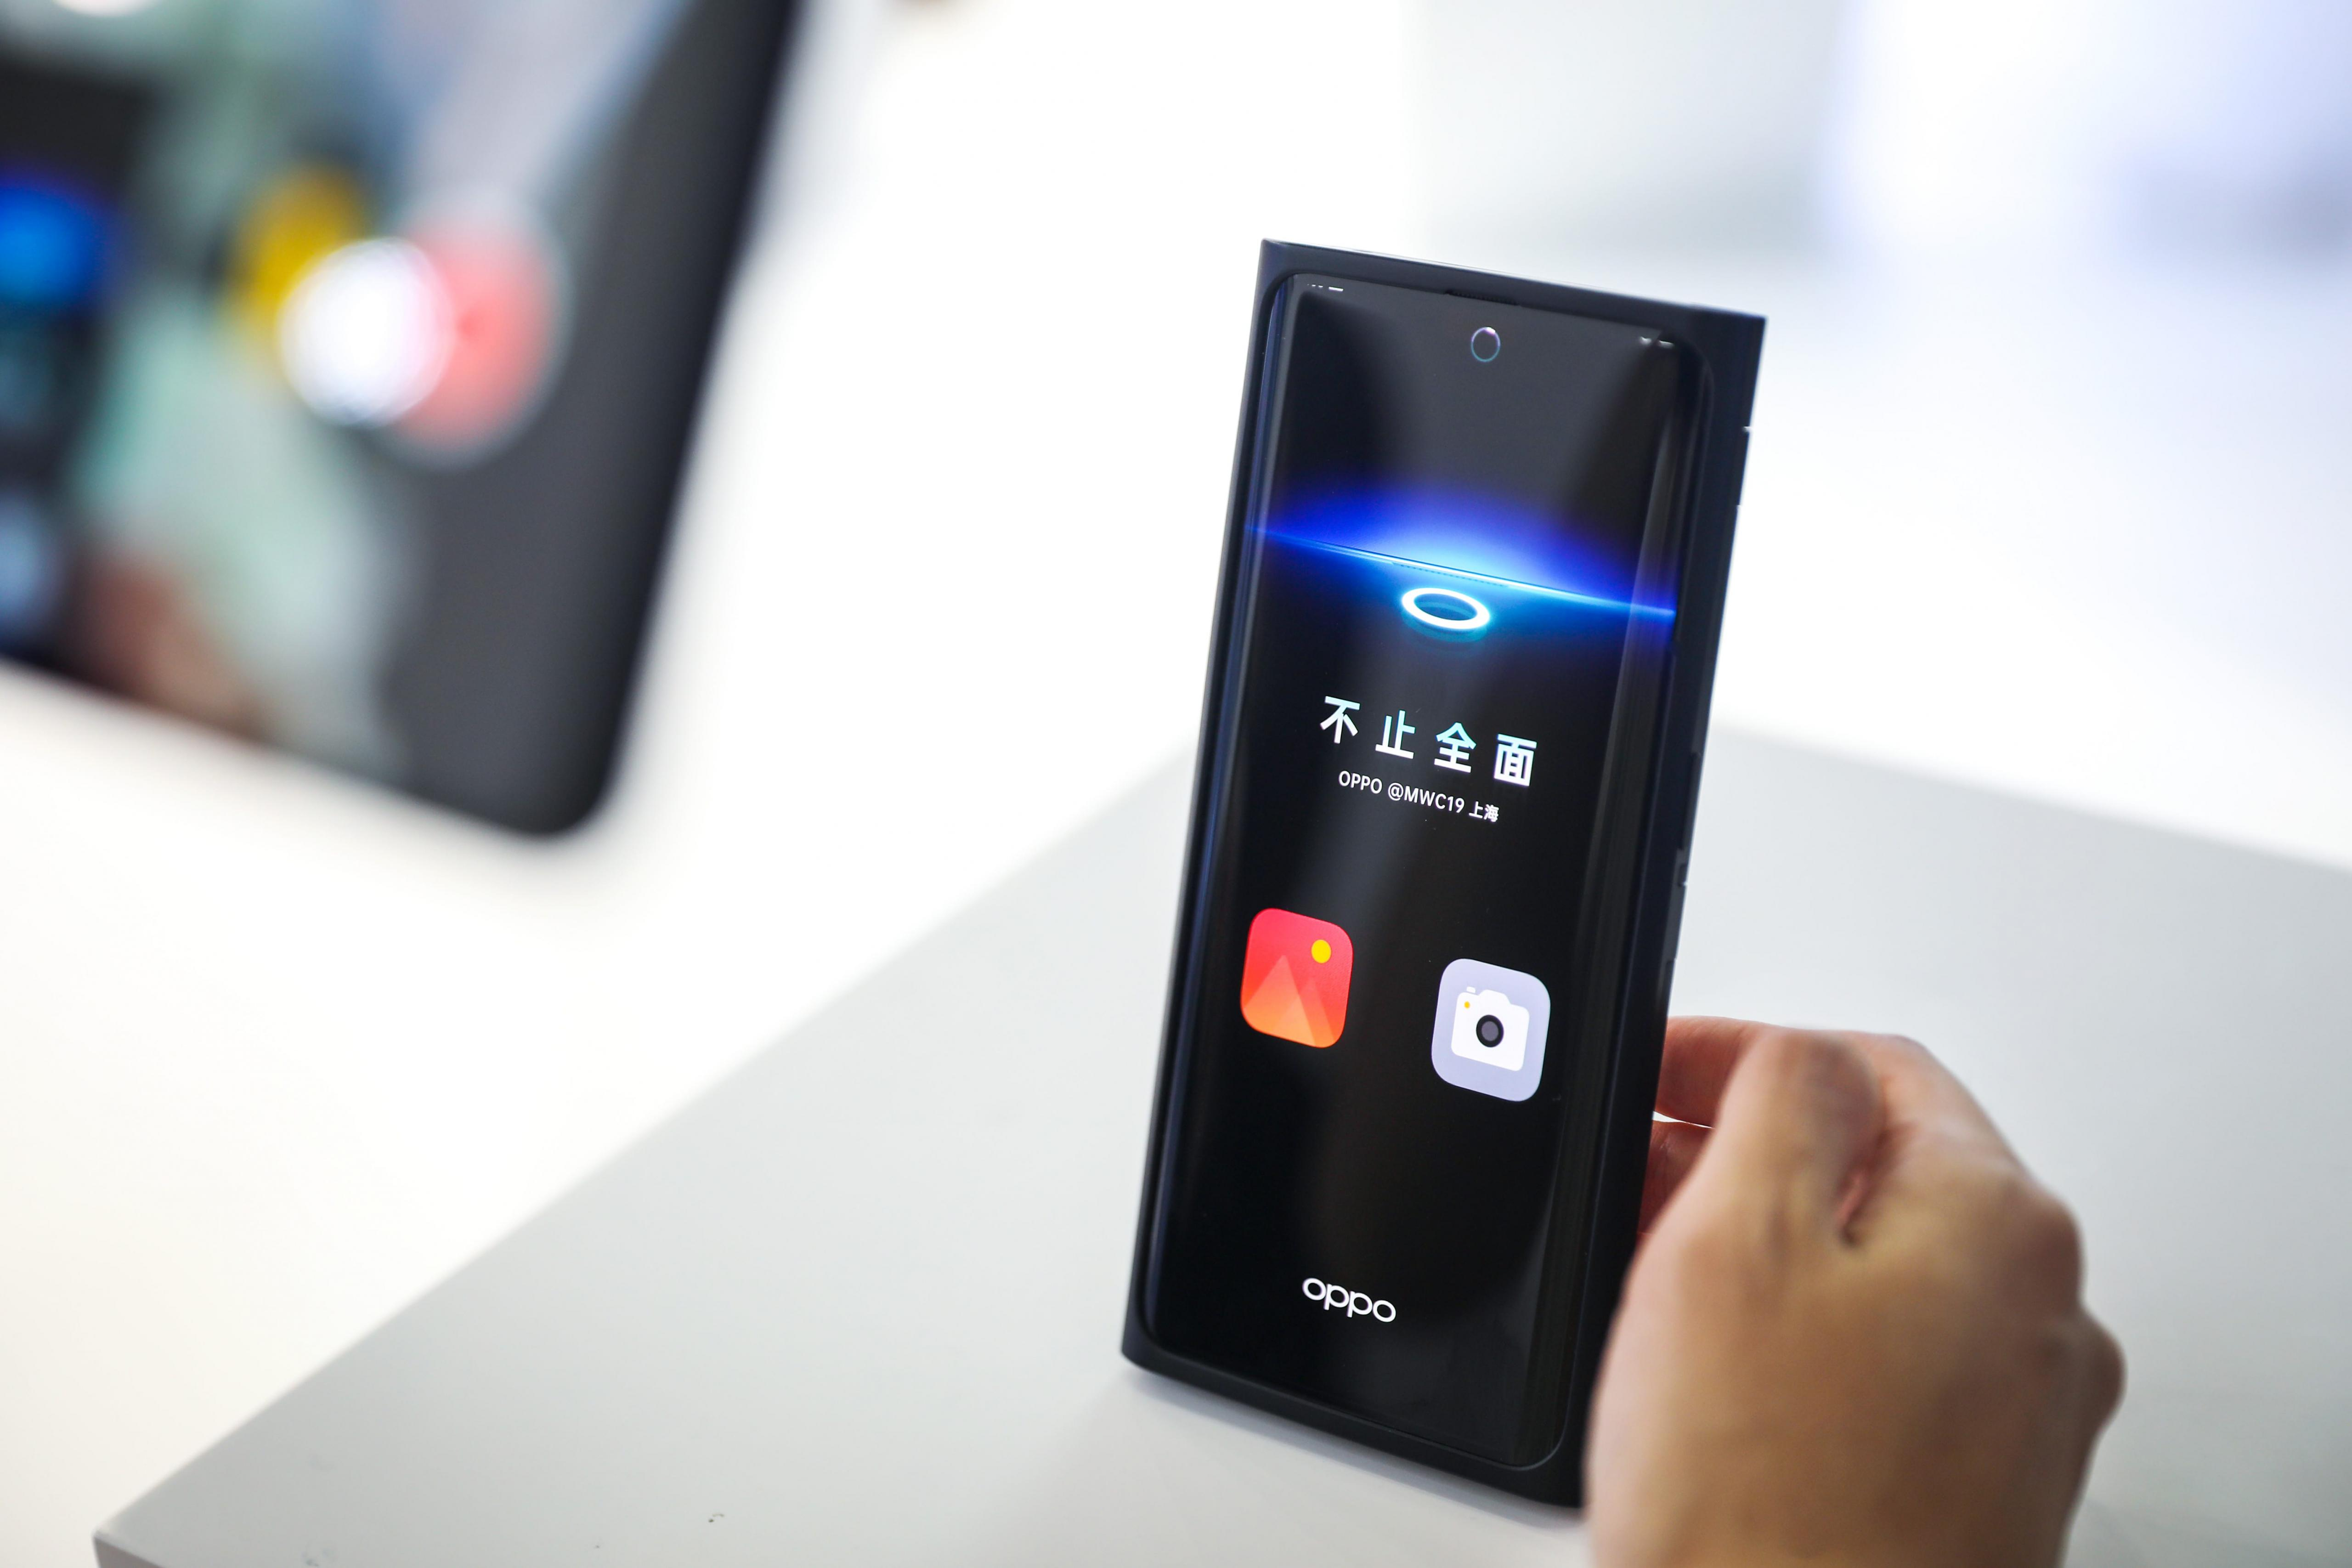 OPPO Takes Lead in Unveiling Innovative Technologies– Under-screen Camera and 5G Intelligence at MWC Shanghai 2019